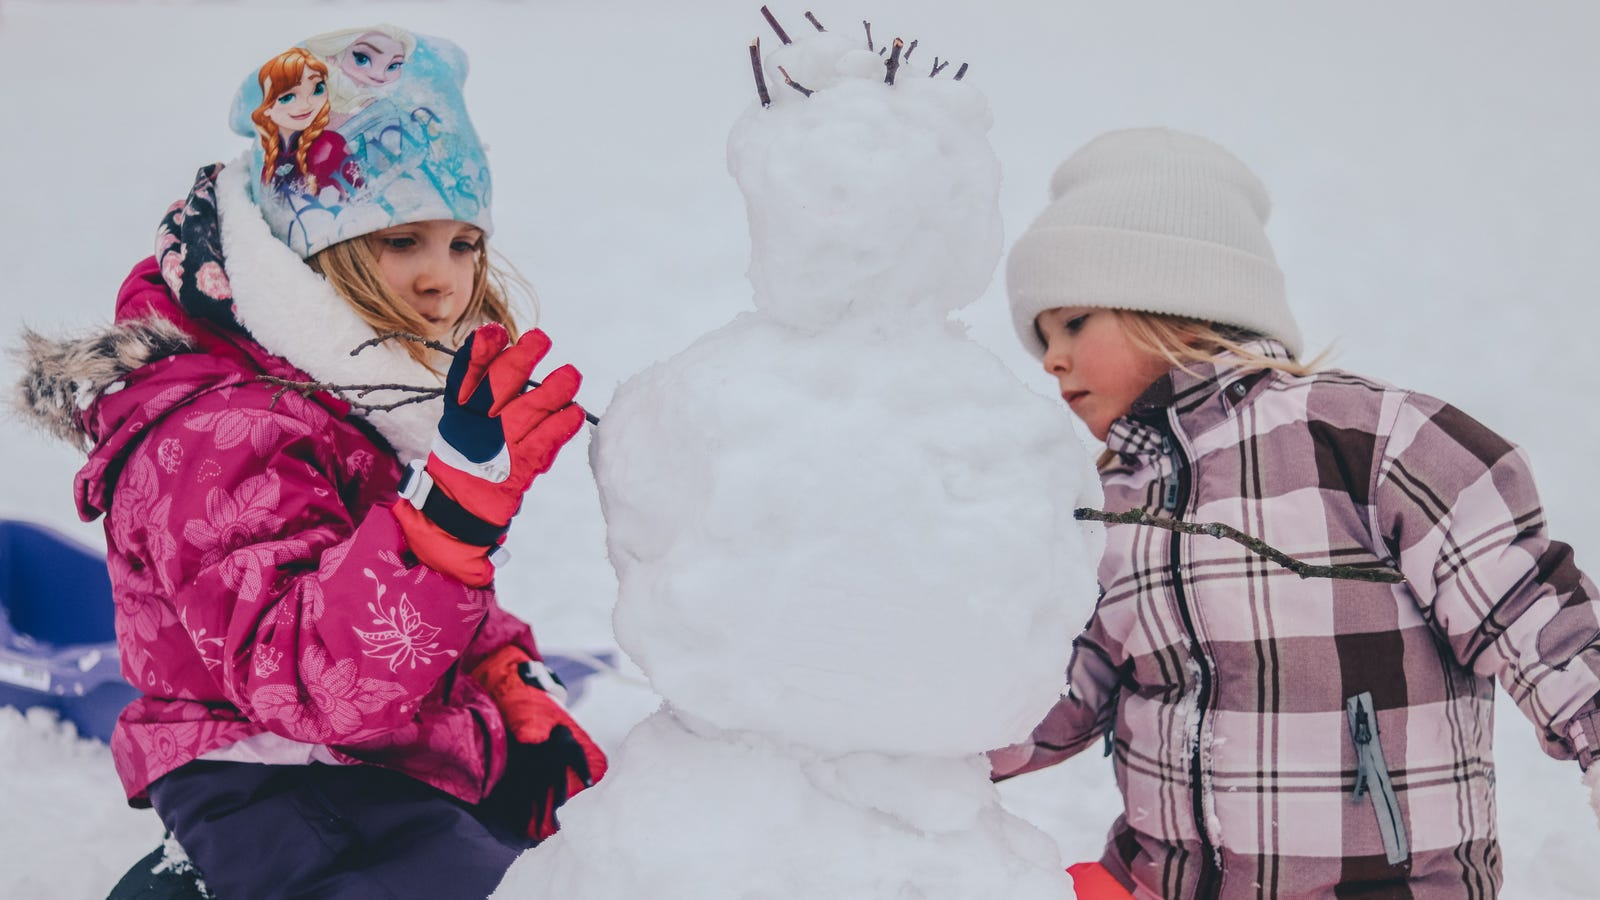 How to Build the Best Snowman, According to Science